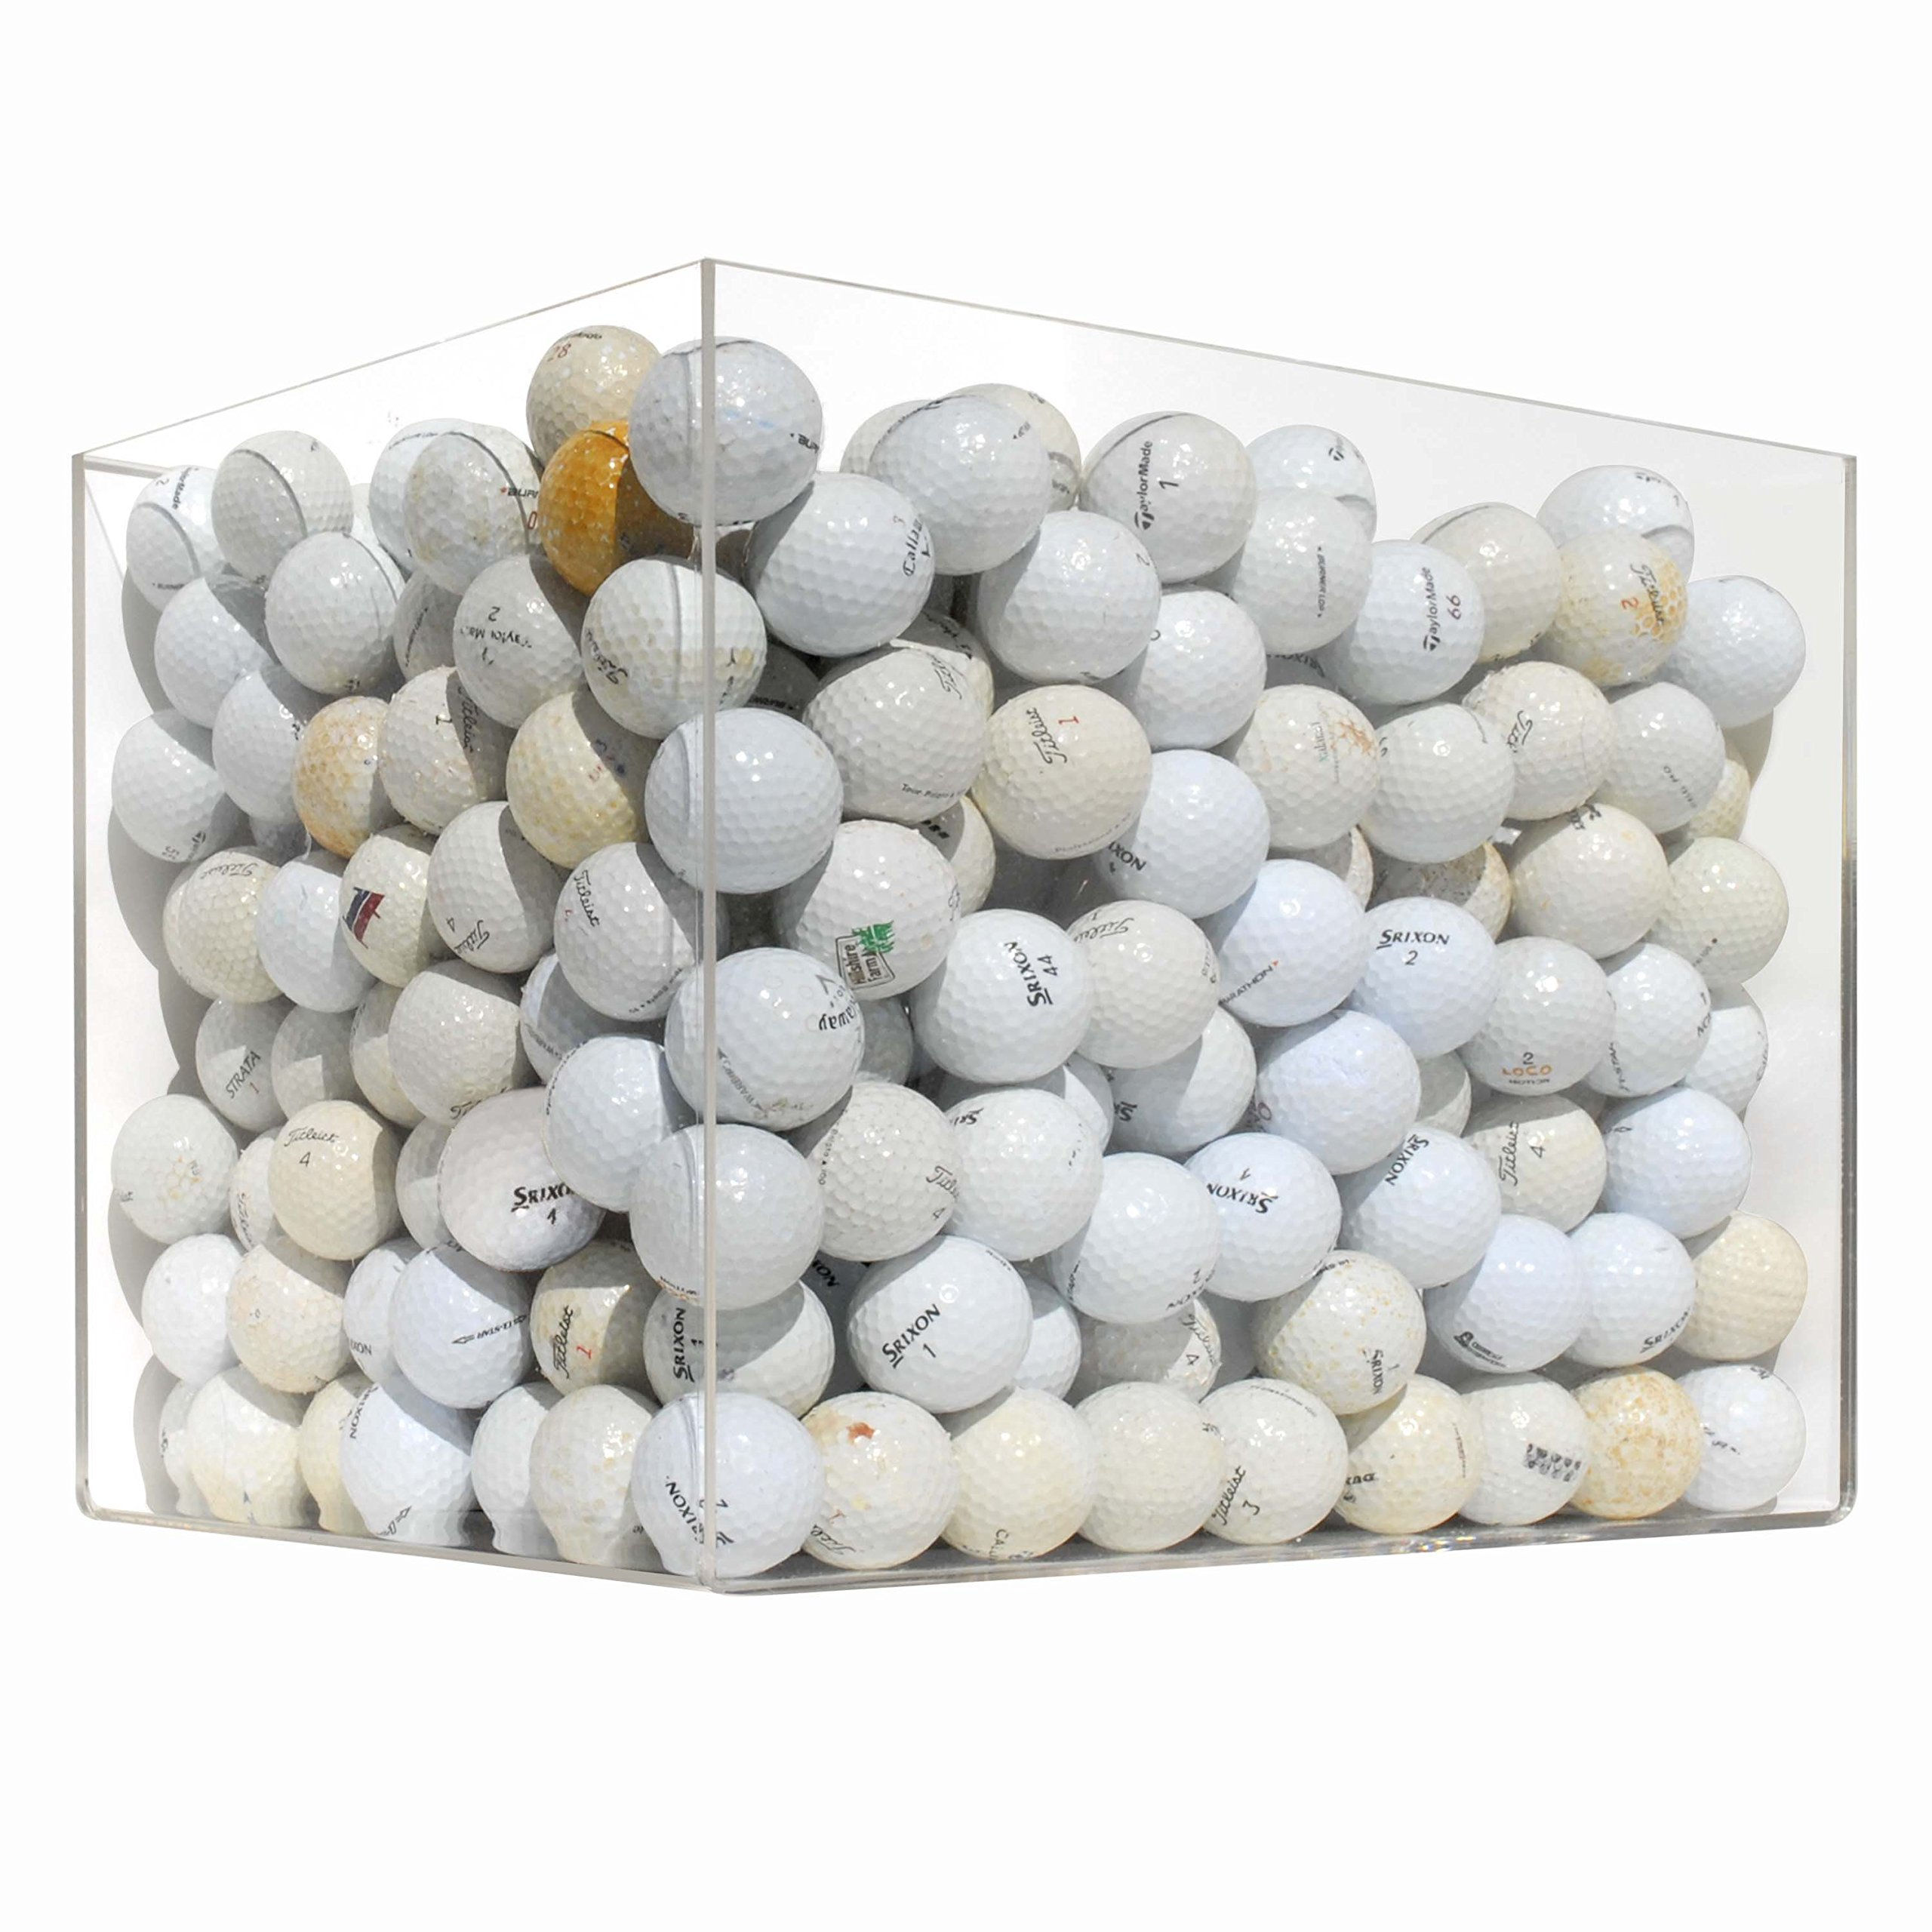 1500 D Grade Range Balls, Hit Away - Used Golf Balls